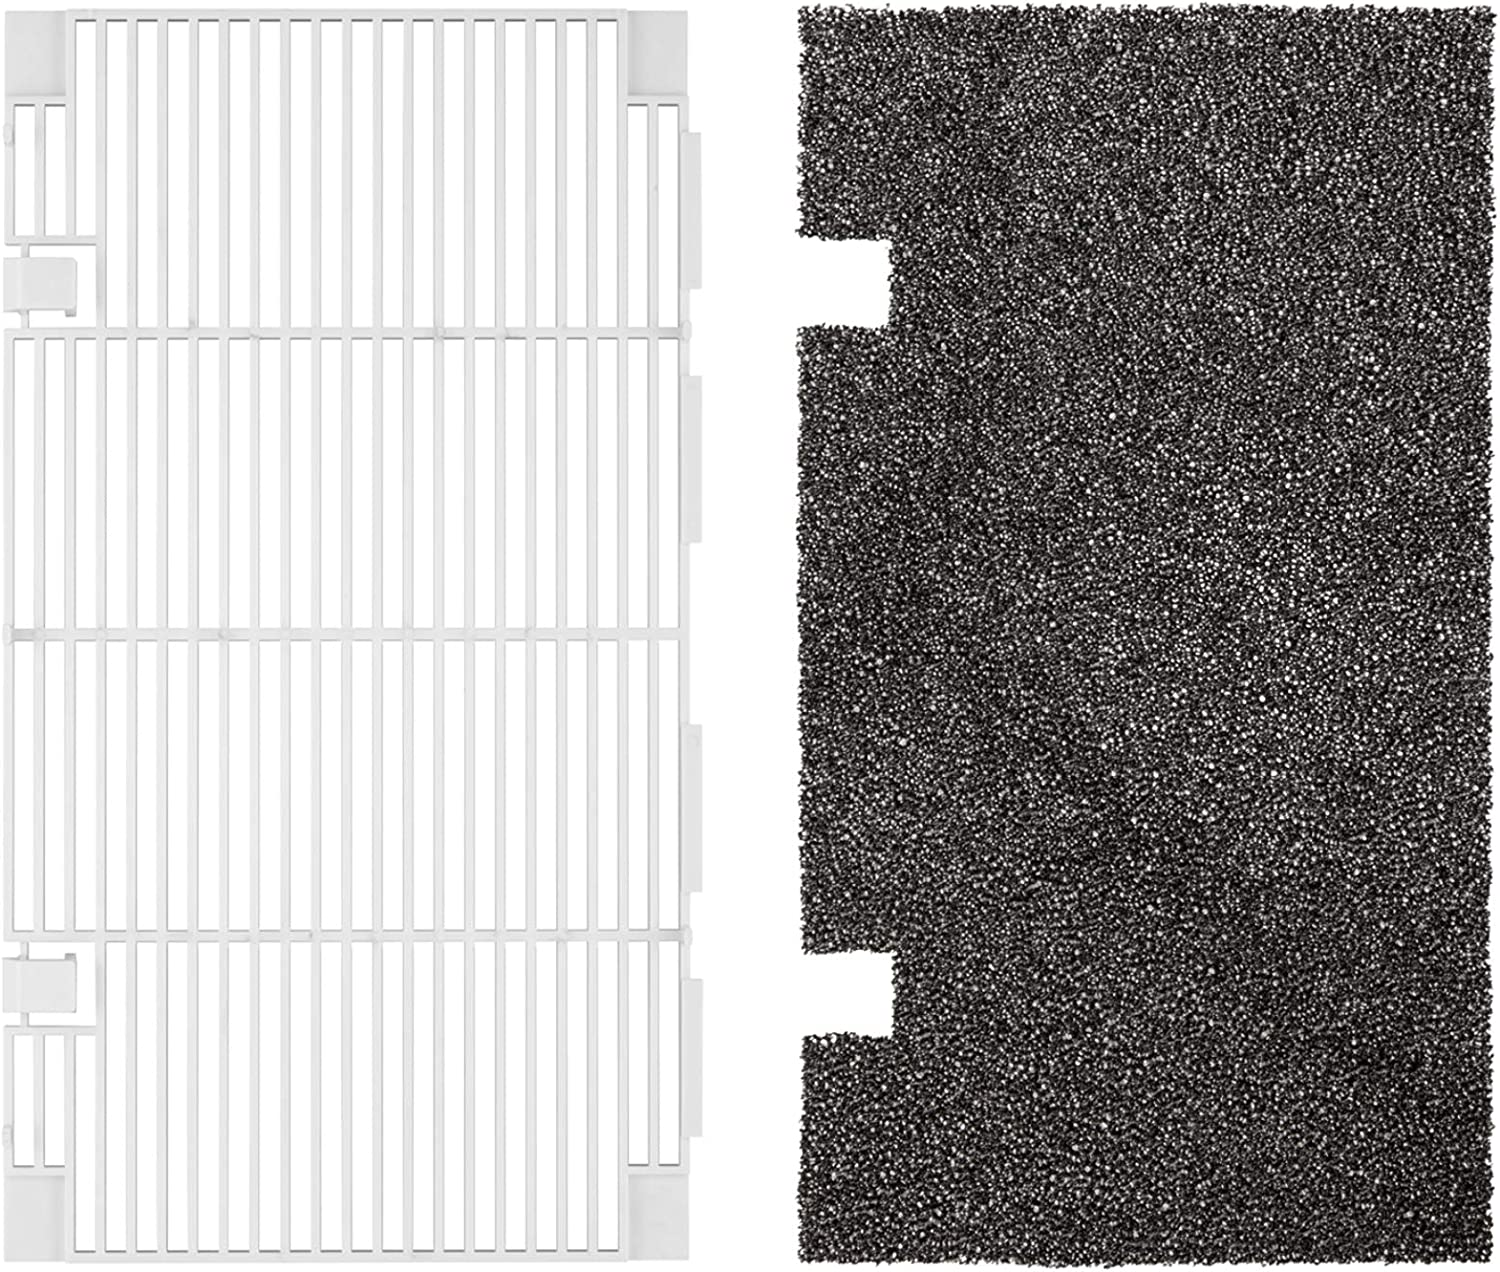 Ducted Air Grille Duo-Therm AC Filter Cover